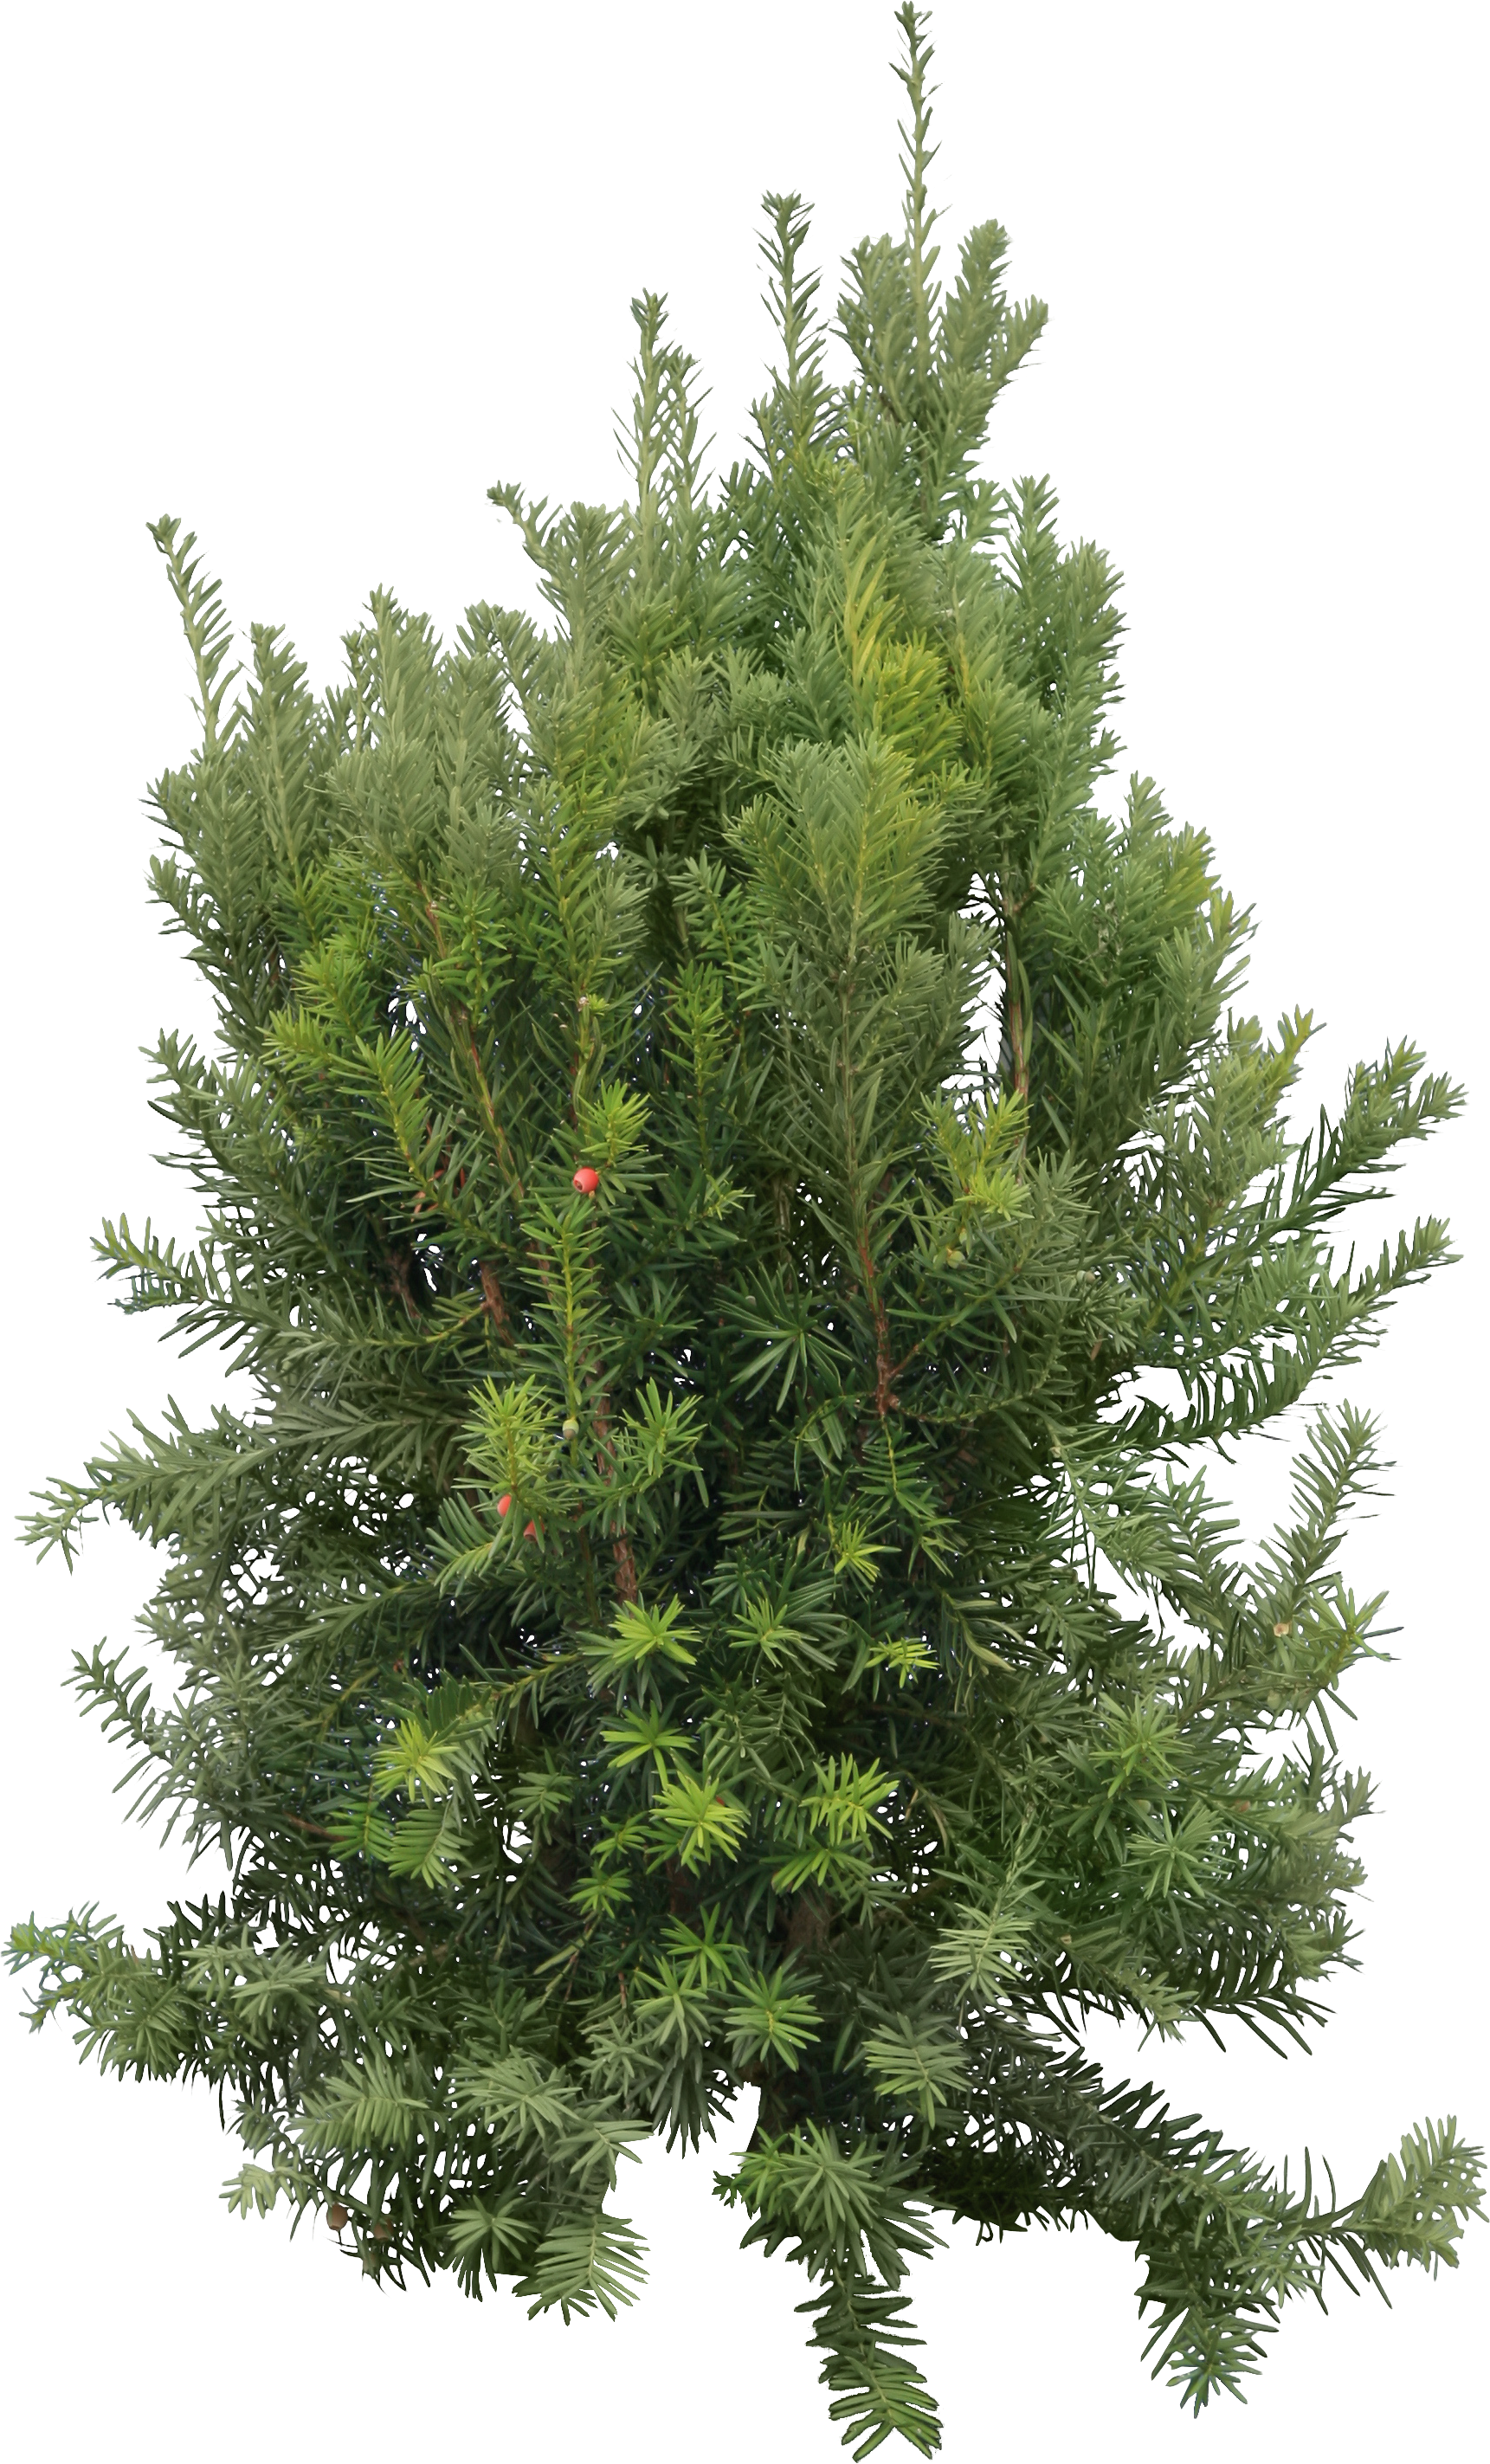 firtree png images free download picture